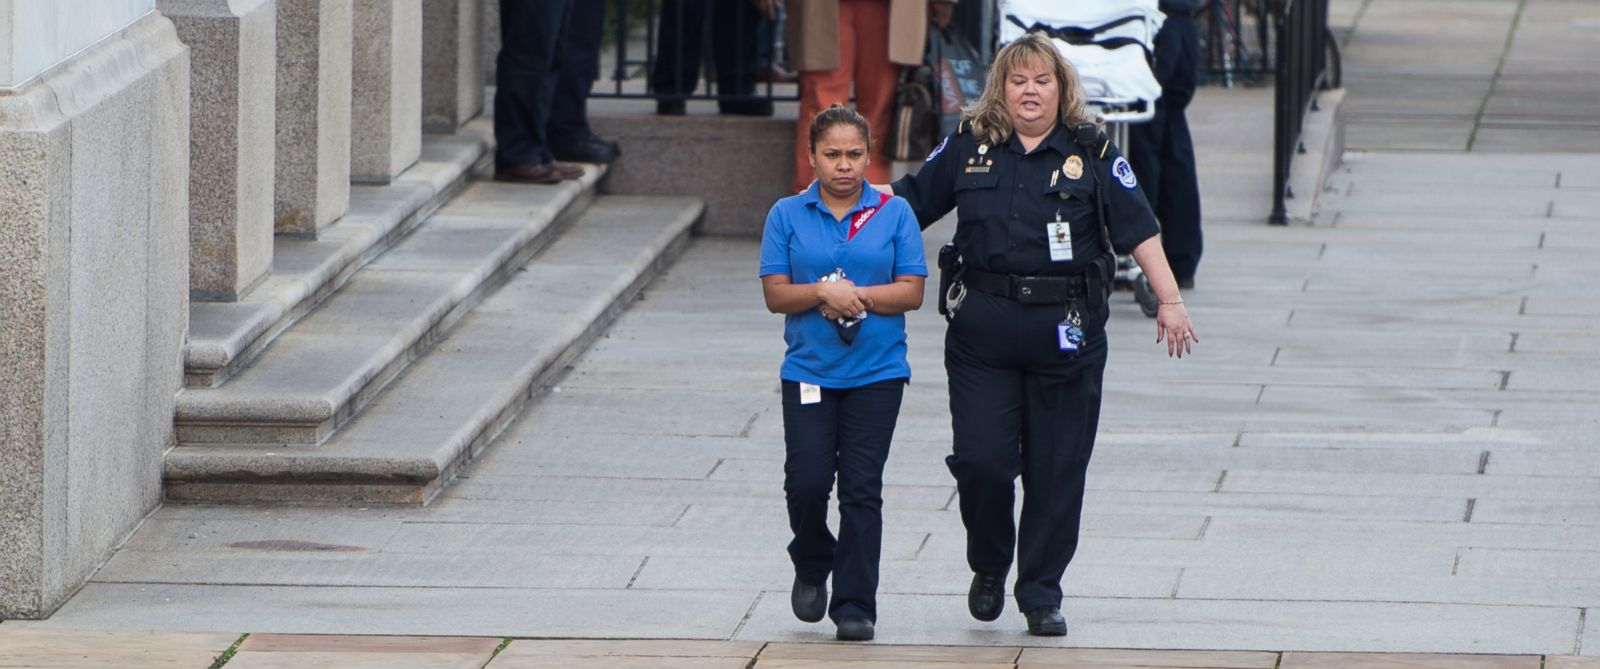 PHOTO: A U.S. Capitol Police officer escorts a Sodexo worker from the Longworth House Office Building after an apparent construction accident left some people in the Longworth cafeteria feeling sick on Jan. 15, 2016.